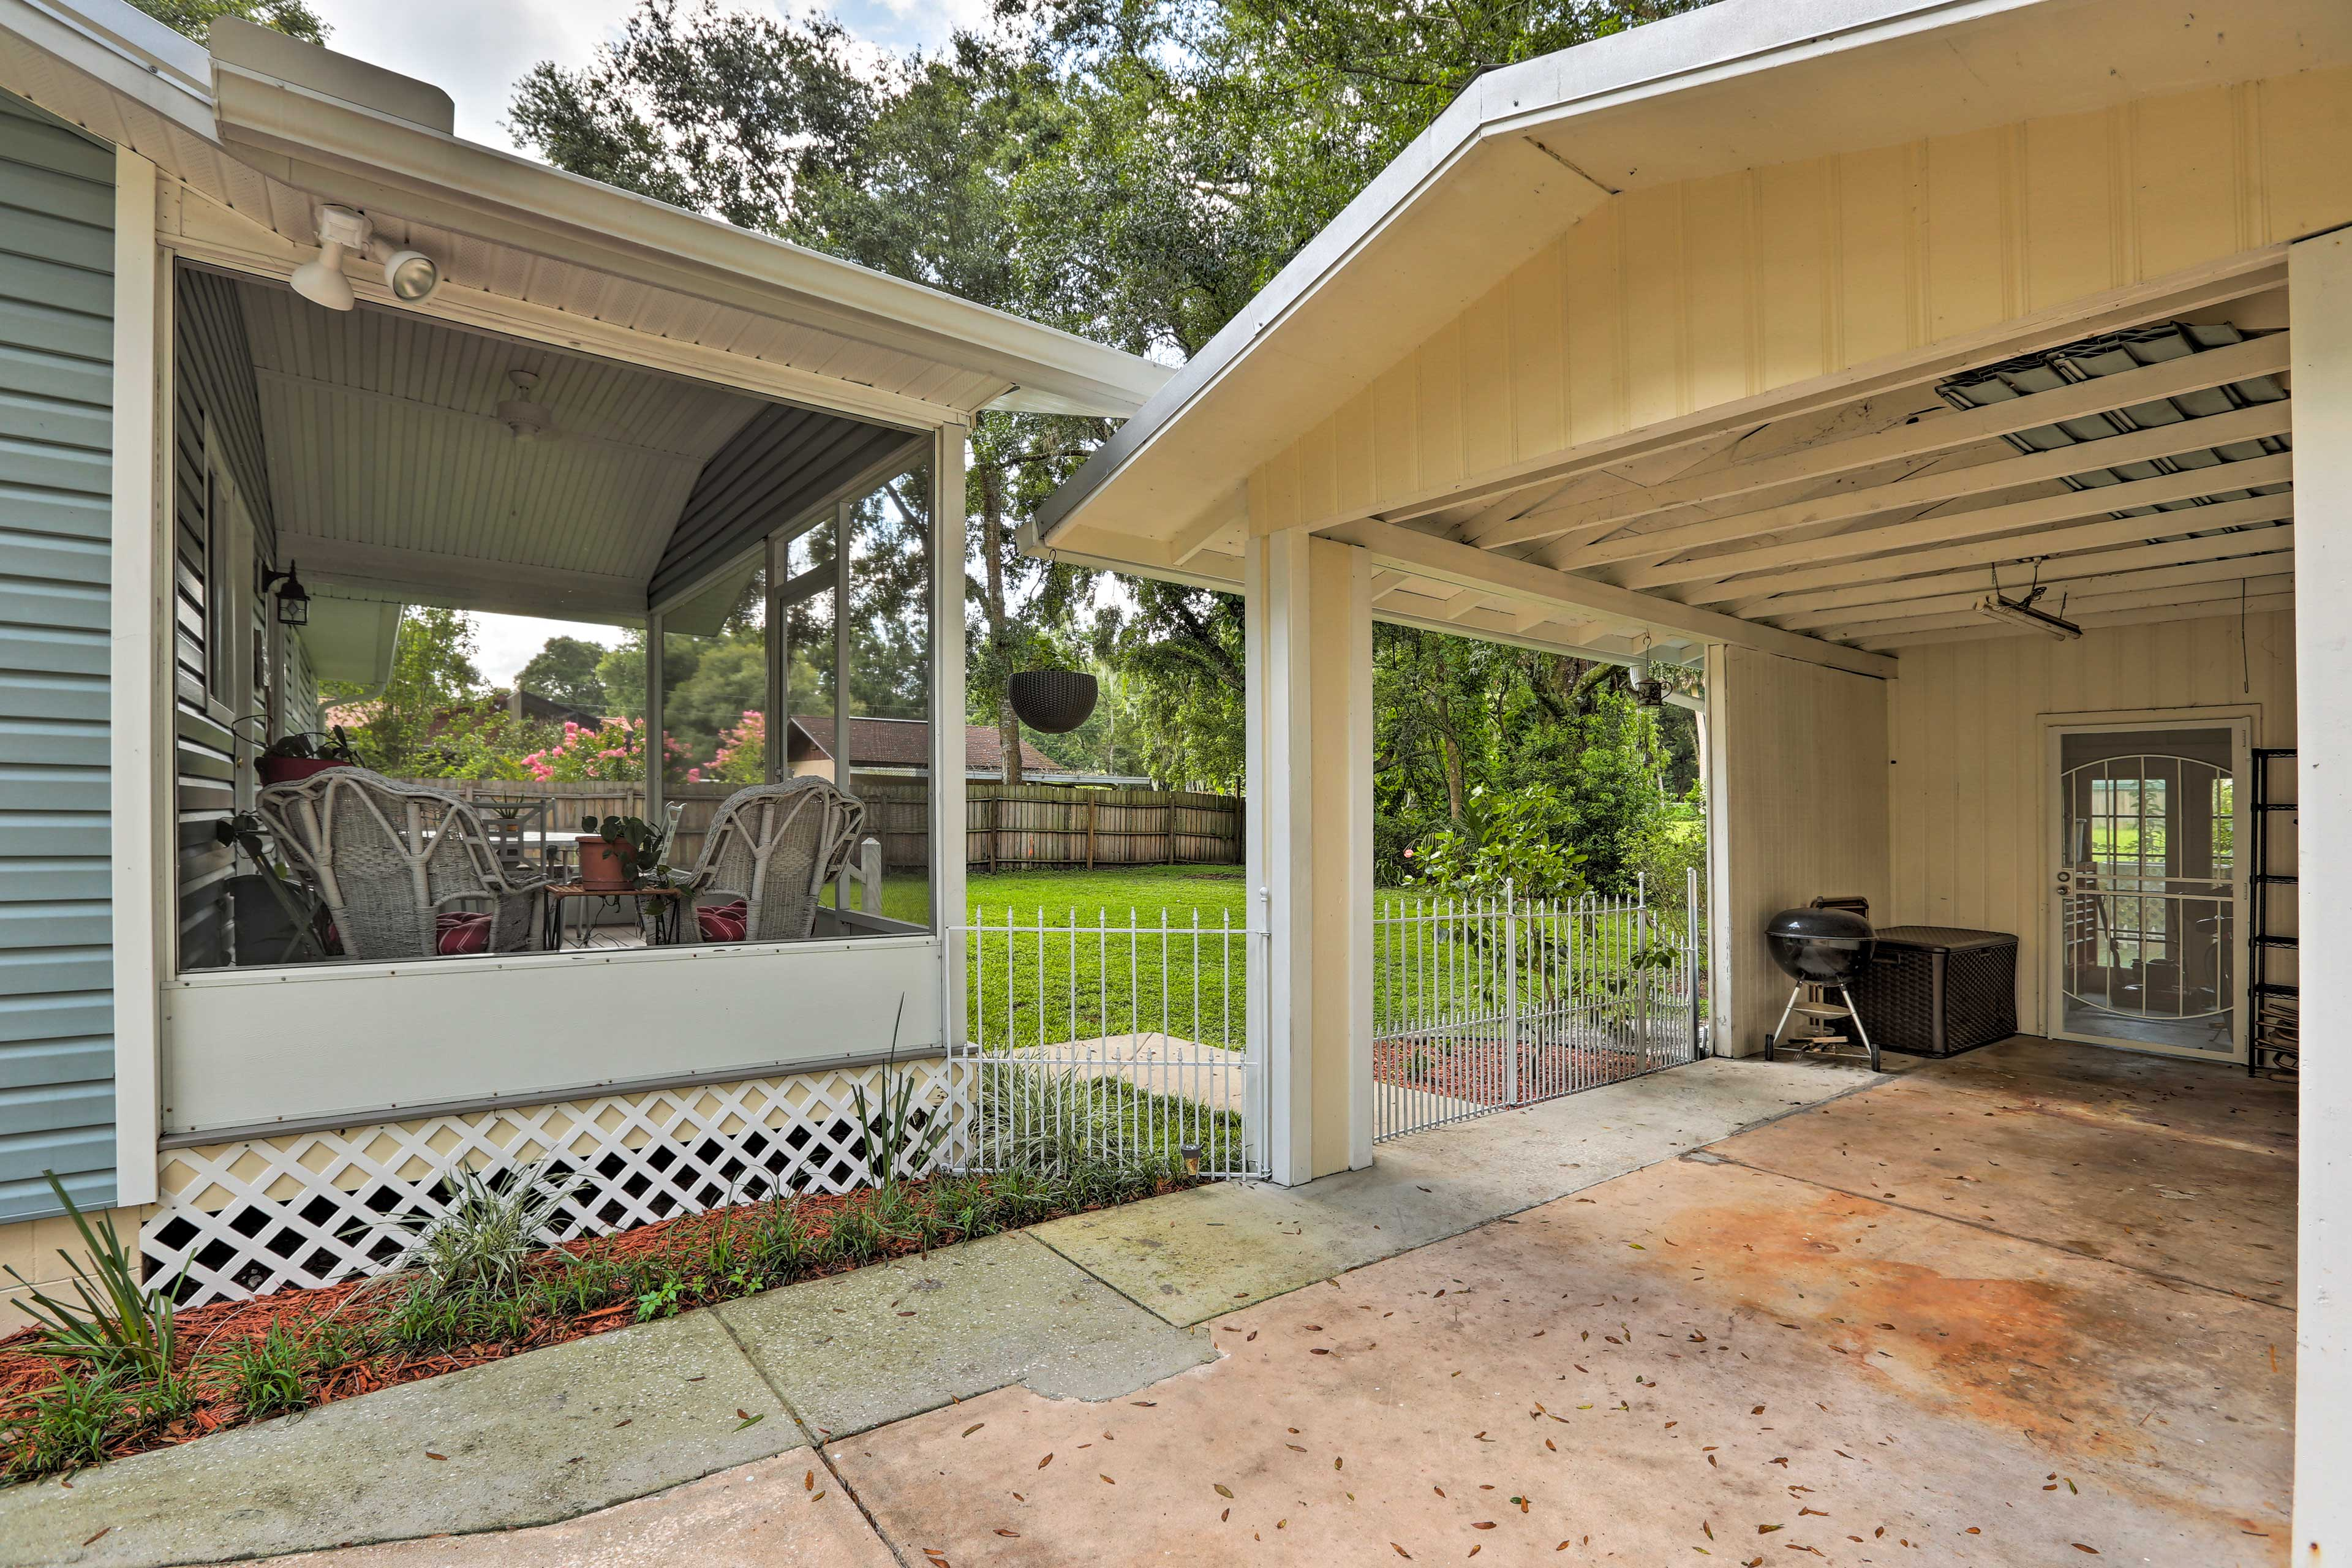 The carport can fit small trailers or motorcycles.